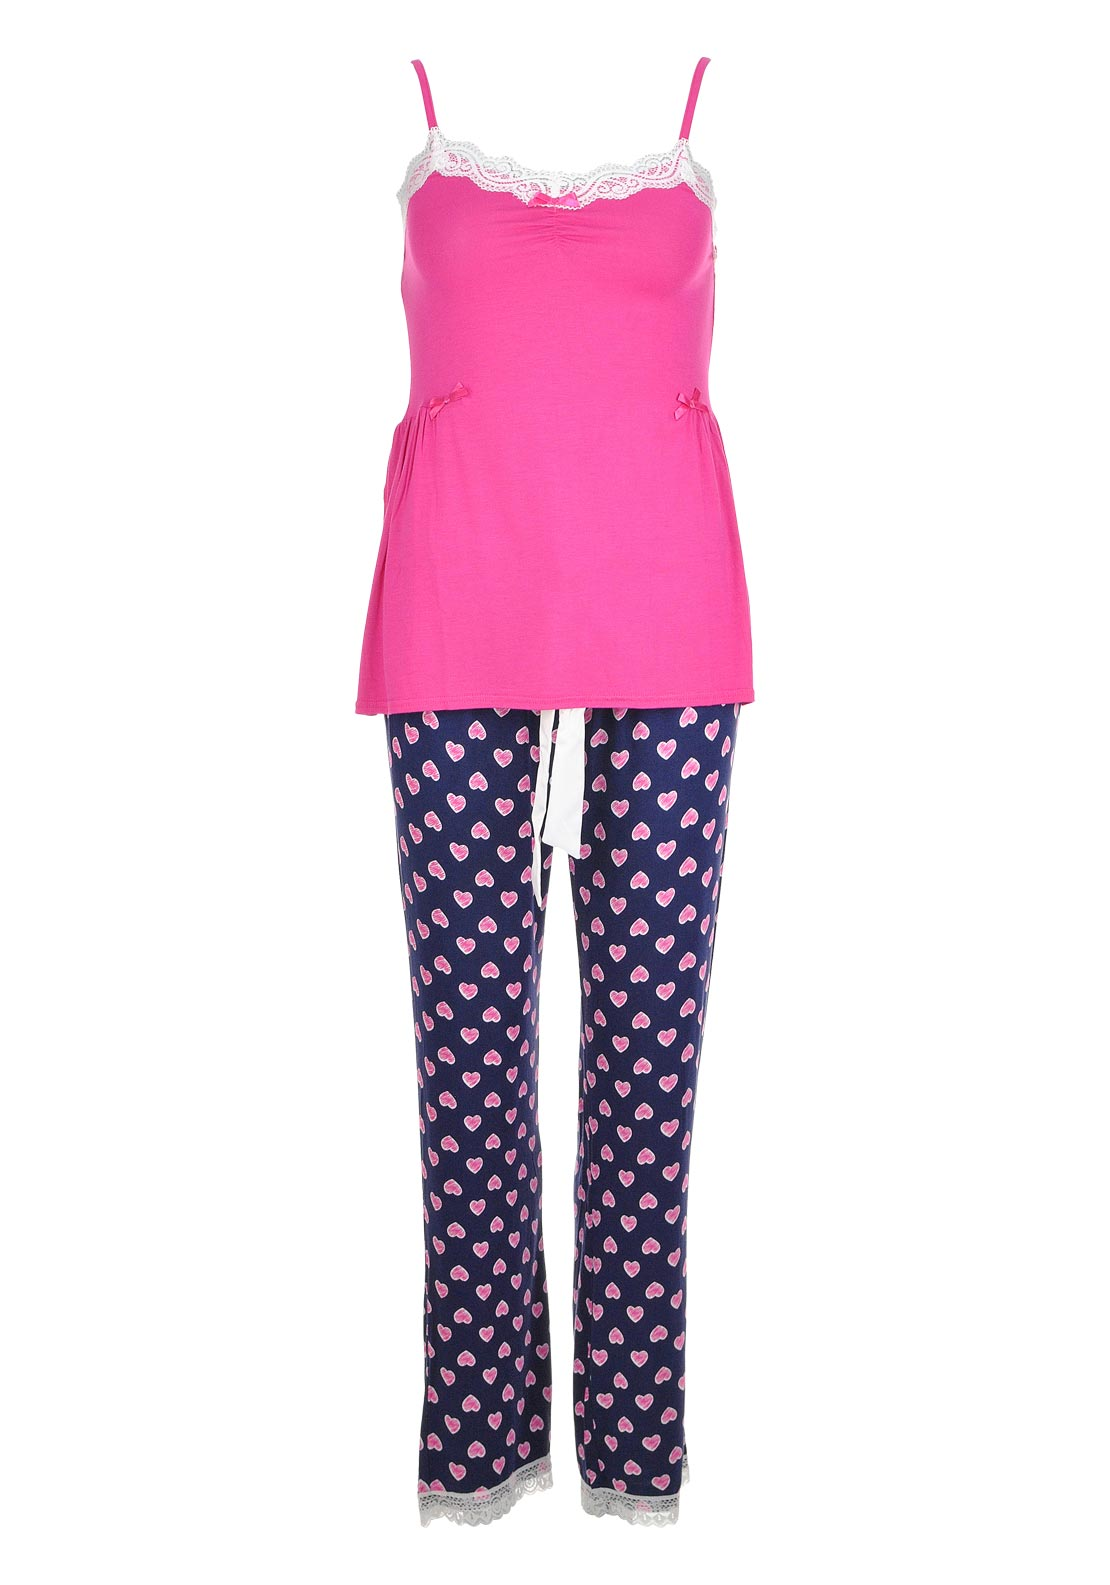 Fresh Nightwear Cami Lace Top & Heart Print Pant Pyjamas Set, Pink and Navy